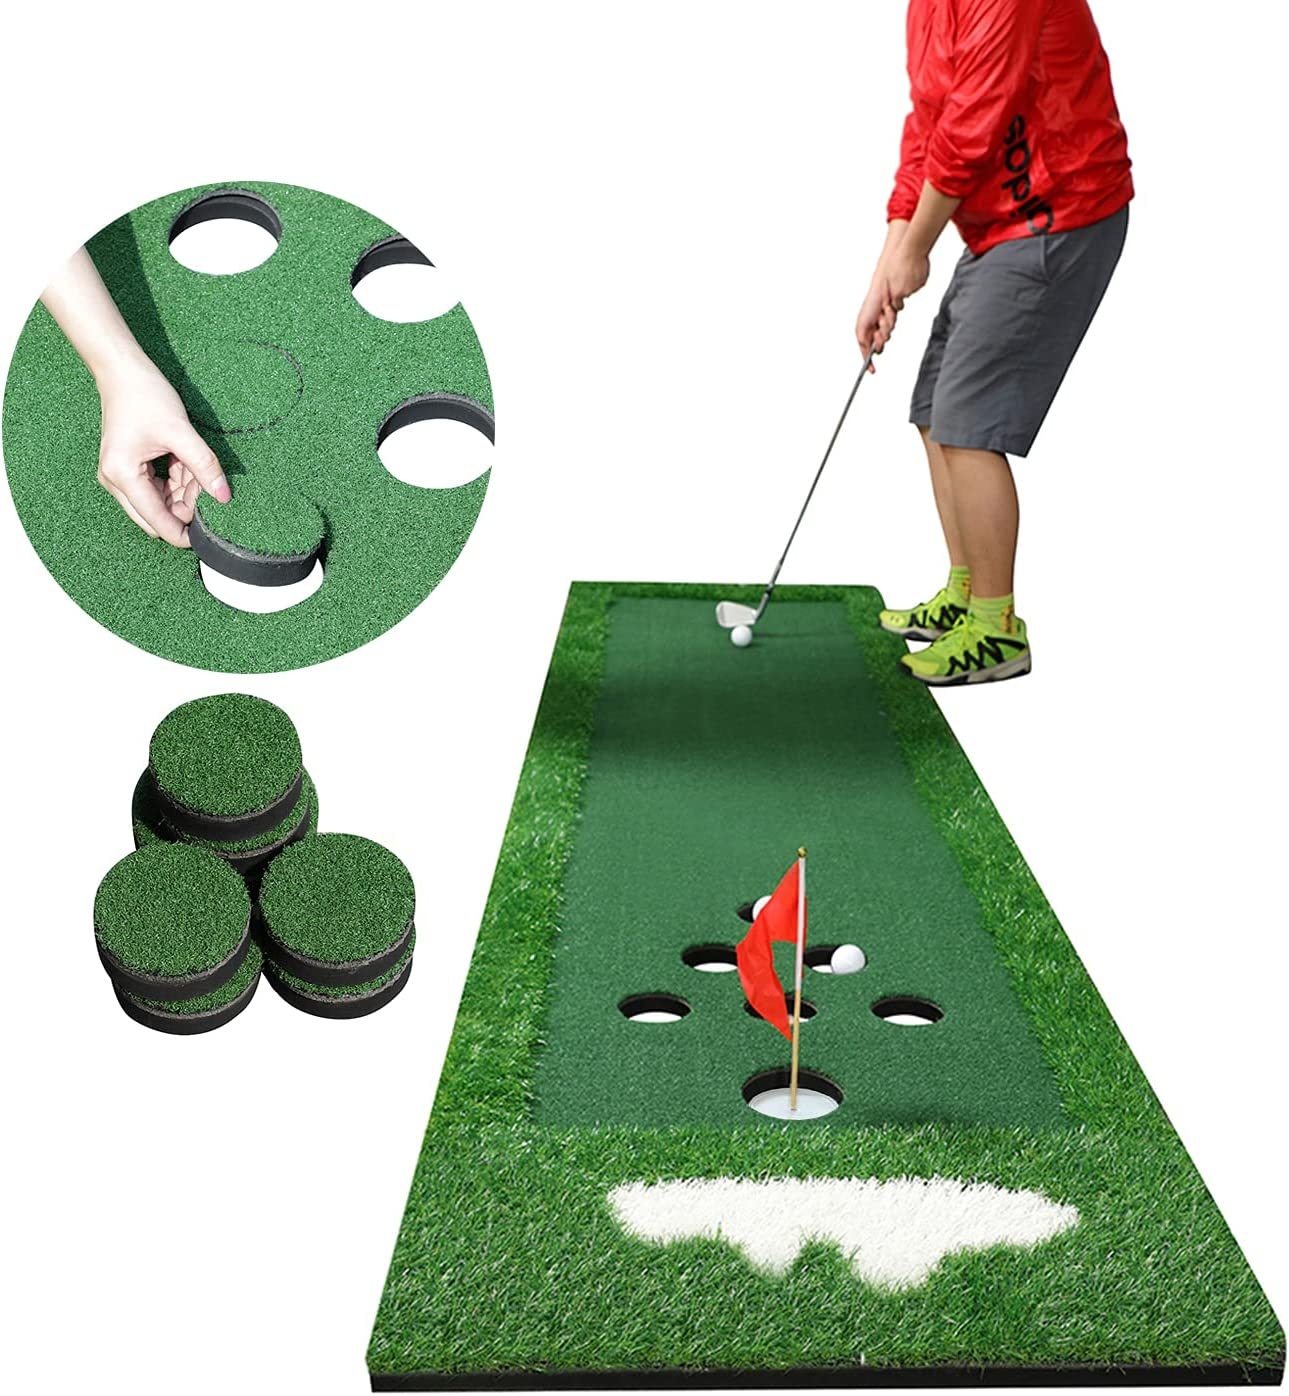 SPRAWL Portable Golf Putting Green Practice Mat   Golf Pong Game Set with Golf Hole Covers & Carrying Bag/Golf Alignment Mirror for Indoor & Outdoor Office Party